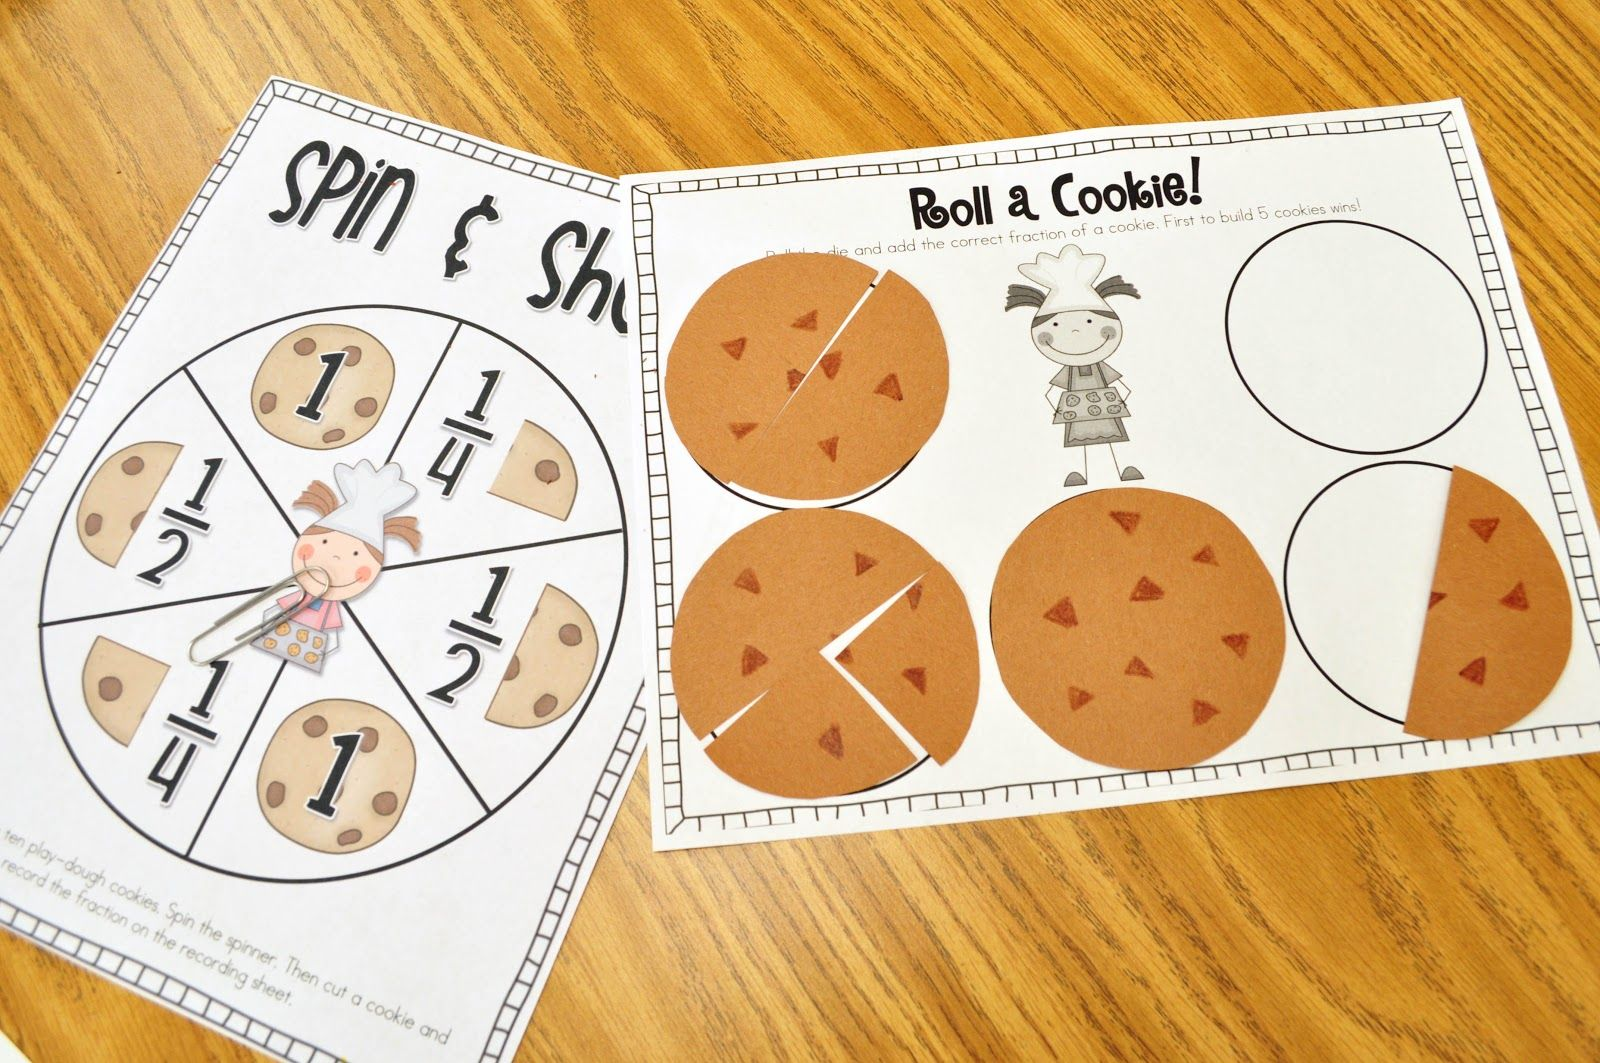 Here S A Fun Cookie Fractions Game To Go Along With The Book The Doorbell Rang By Pat Hutchins